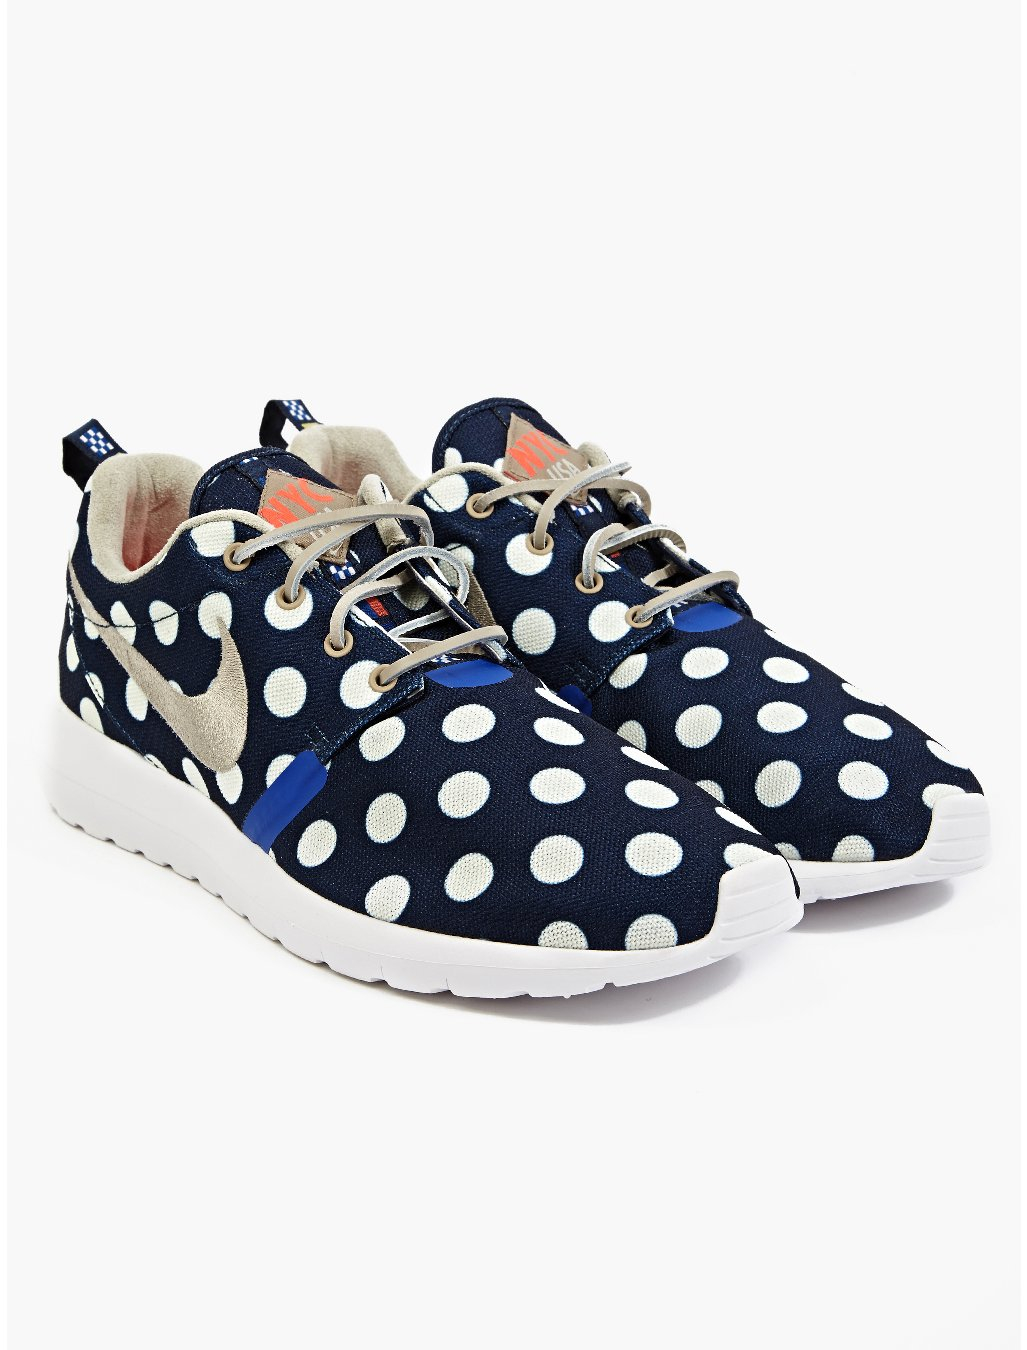 new style 2469b b0dc3 ... qs new york city pack polka dot navy 4c215 fc3a6 clearance nike air  roshe run navy blue polka dot 7857f 67bcd ...